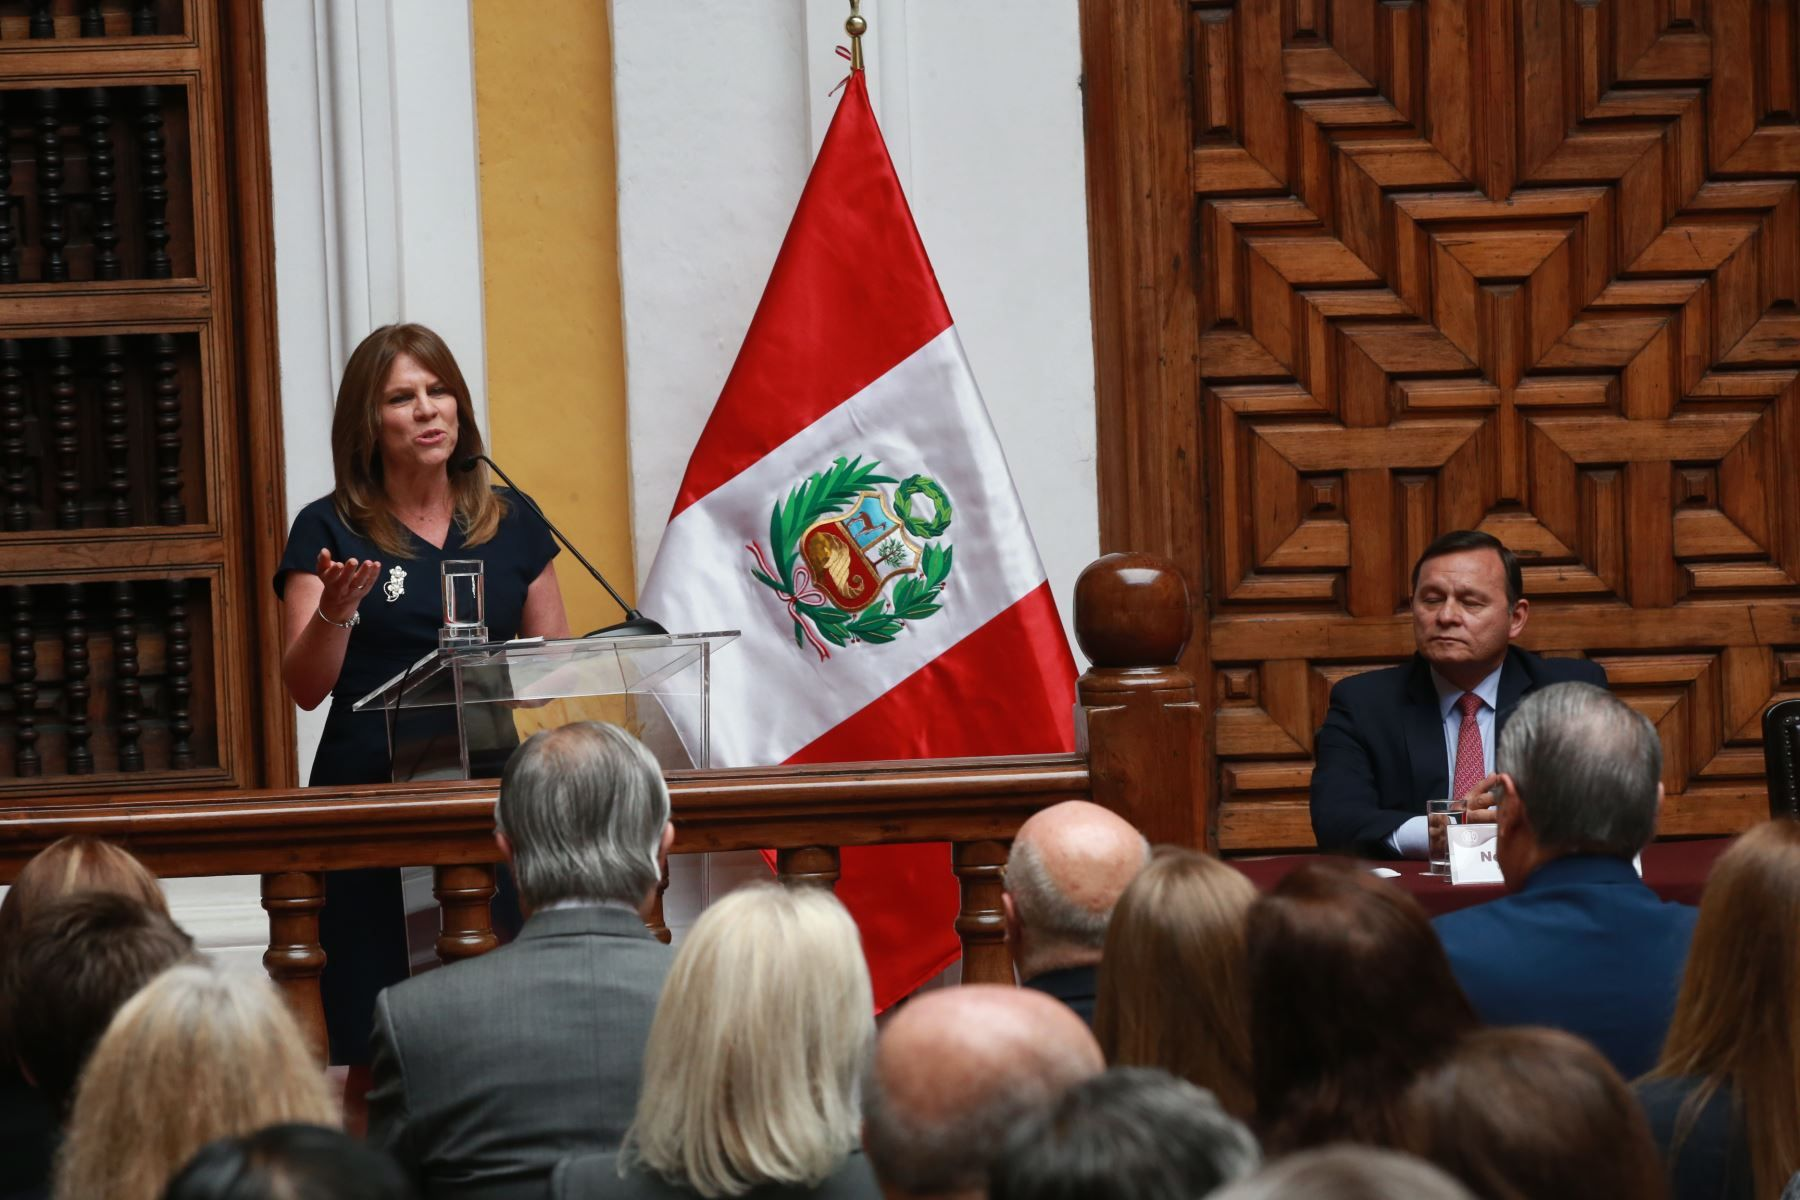 Peru Withdraws Venezuela's Invitation to Regional Meeting